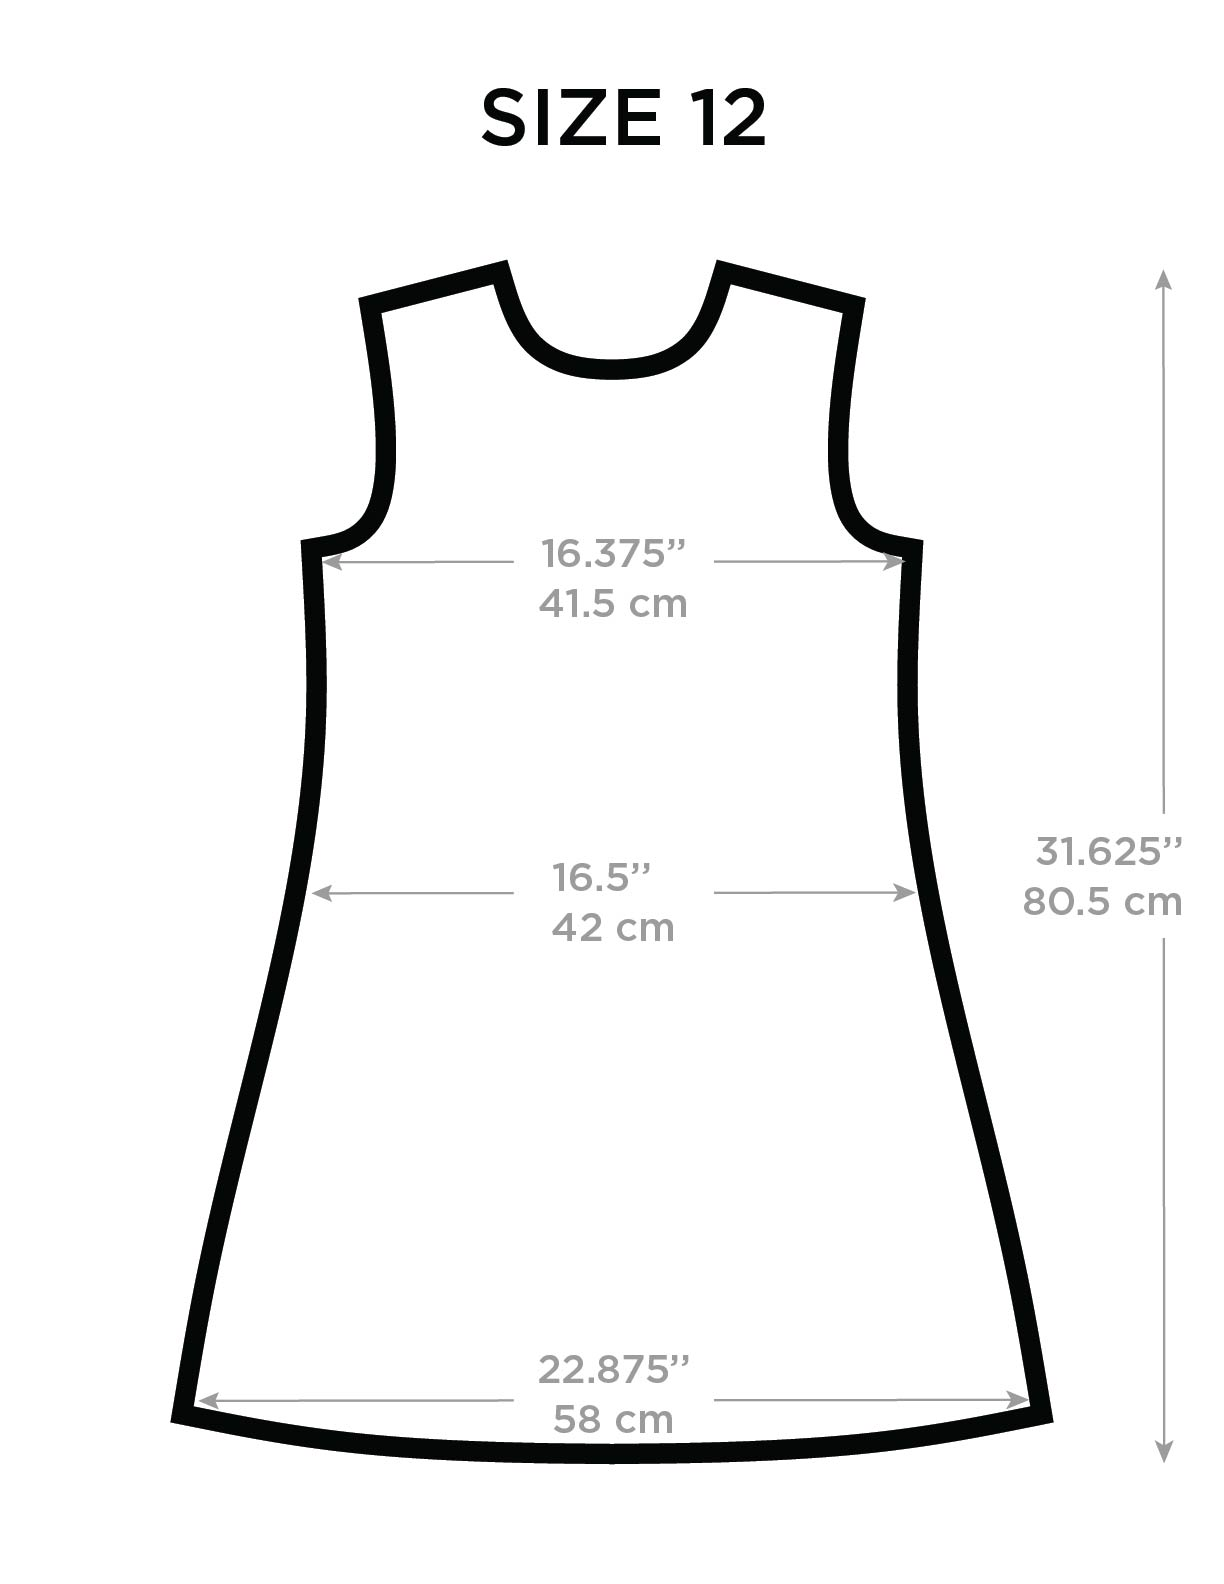 Children's Body Measurements and Garment Sizes All measurements in inches. Click here for a program that will help you convert these inch measurements to metric equivalents.. For a chart showing the amount of fitting ease to add to these measurements, click here.